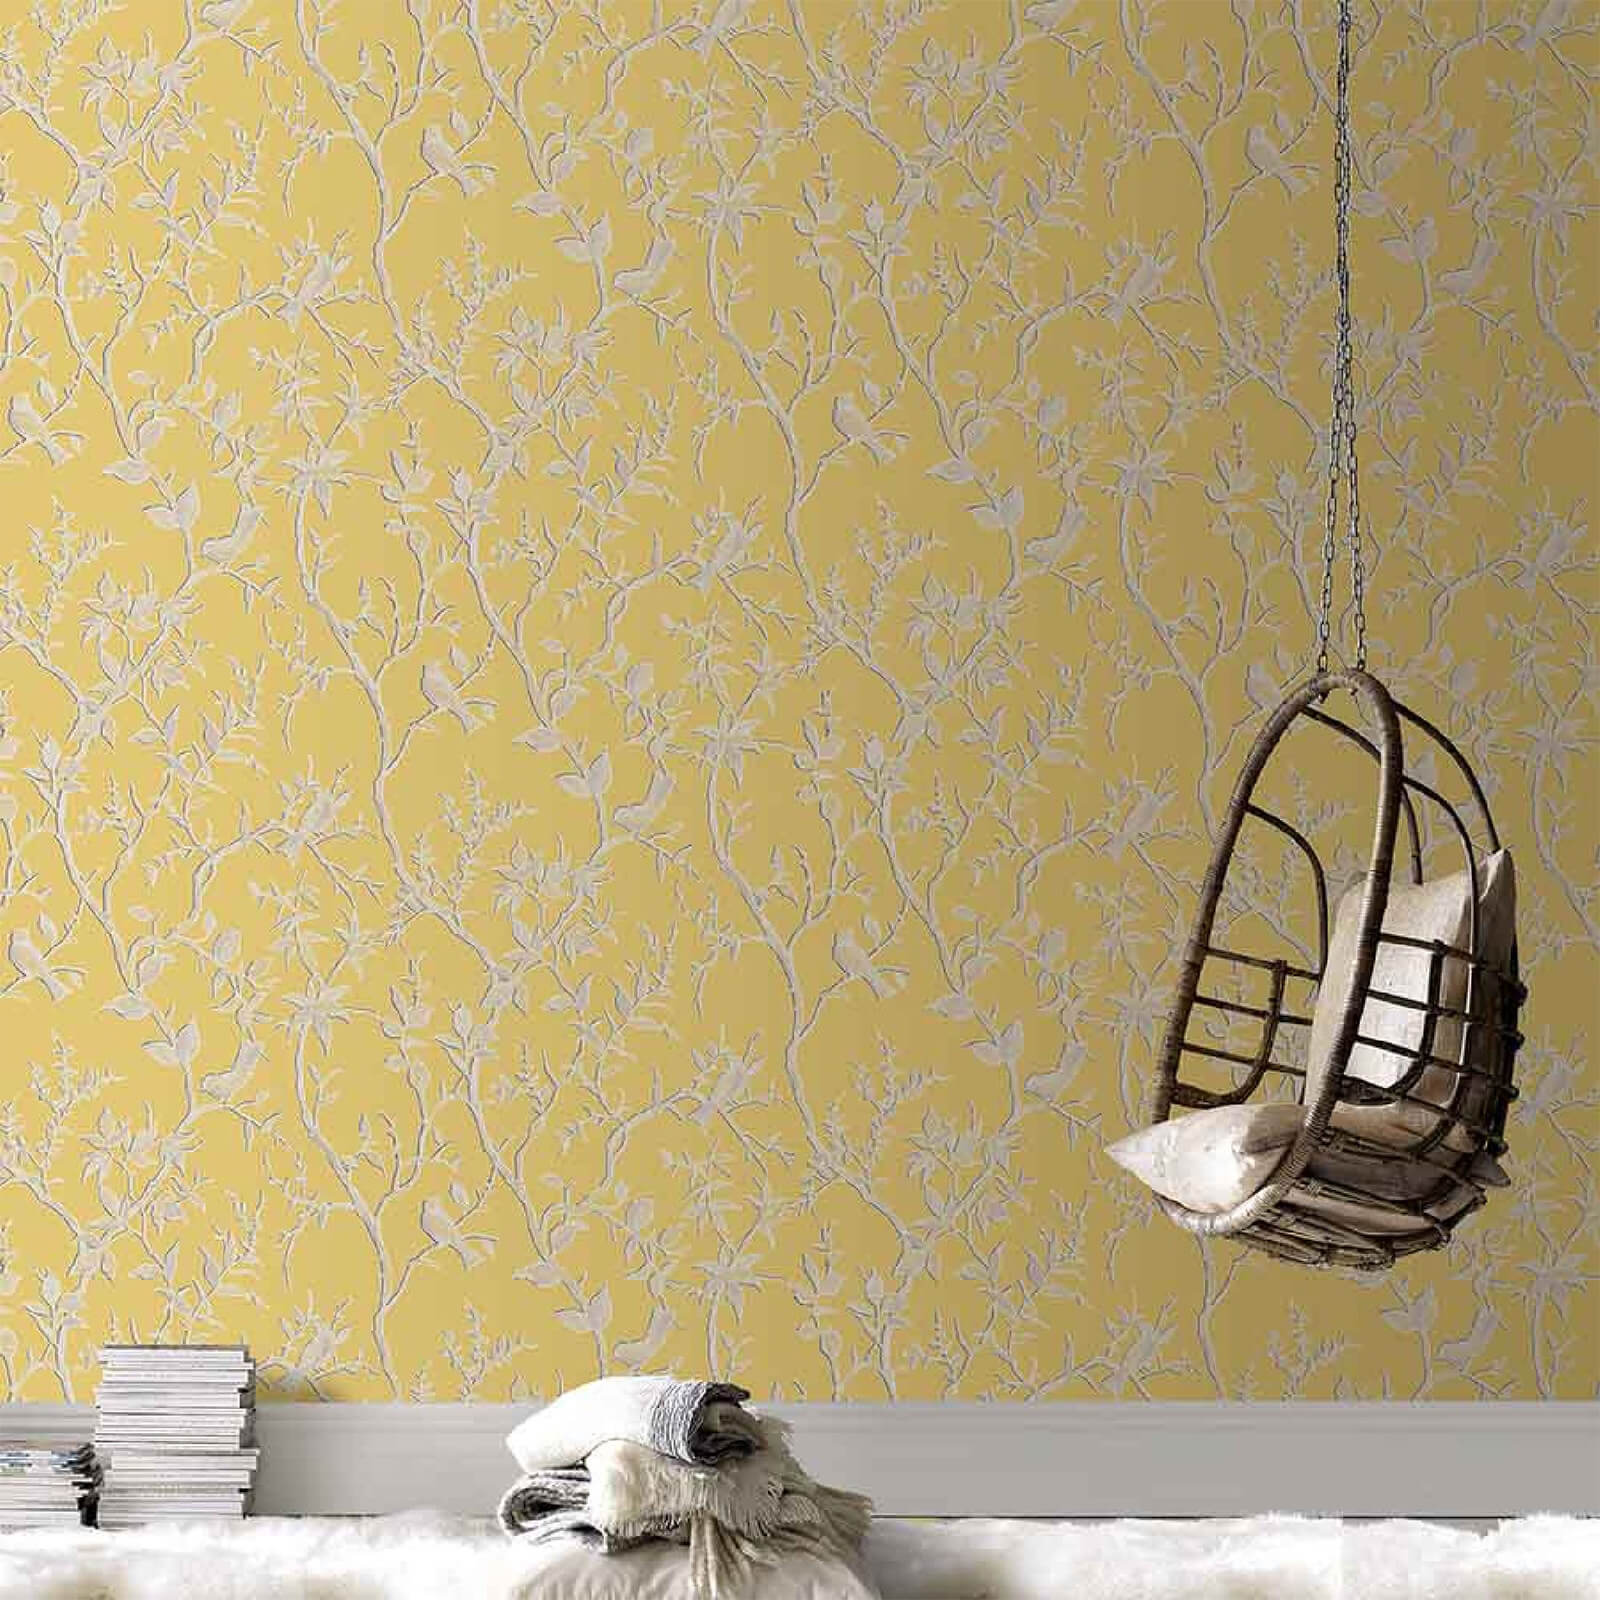 Superfresco Yellow/Gold Laos Trail Floral Wallpaper